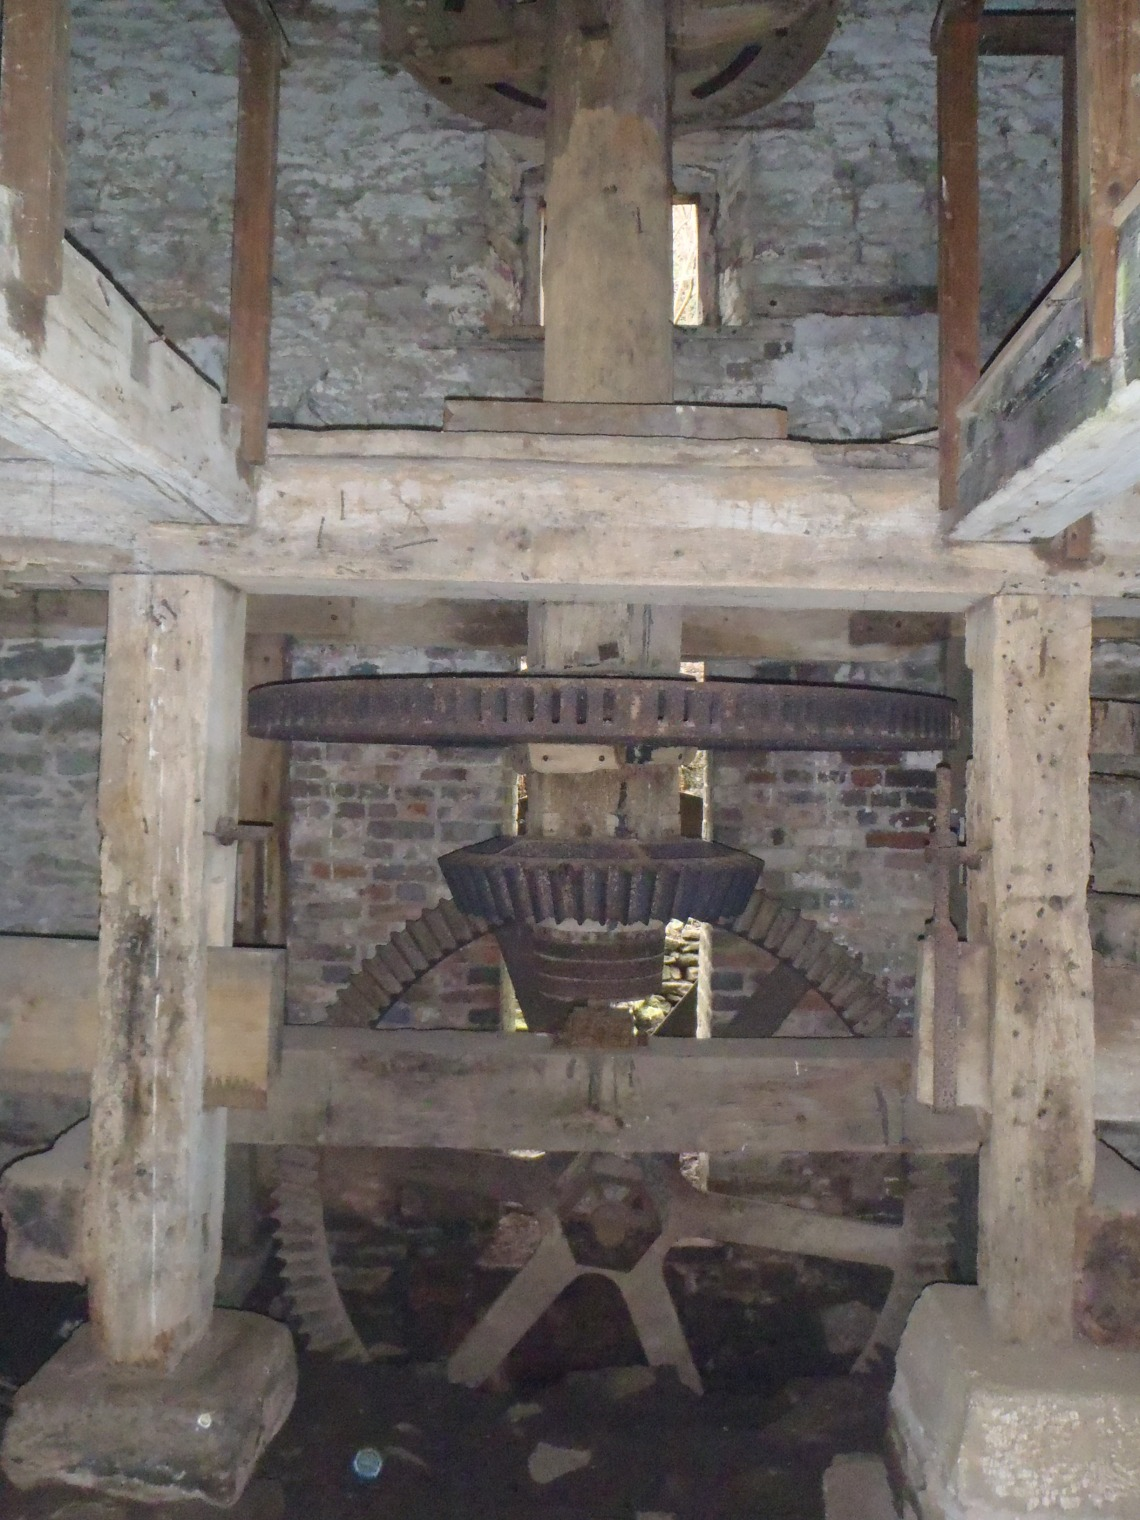 Grinding mechanism inside the mill